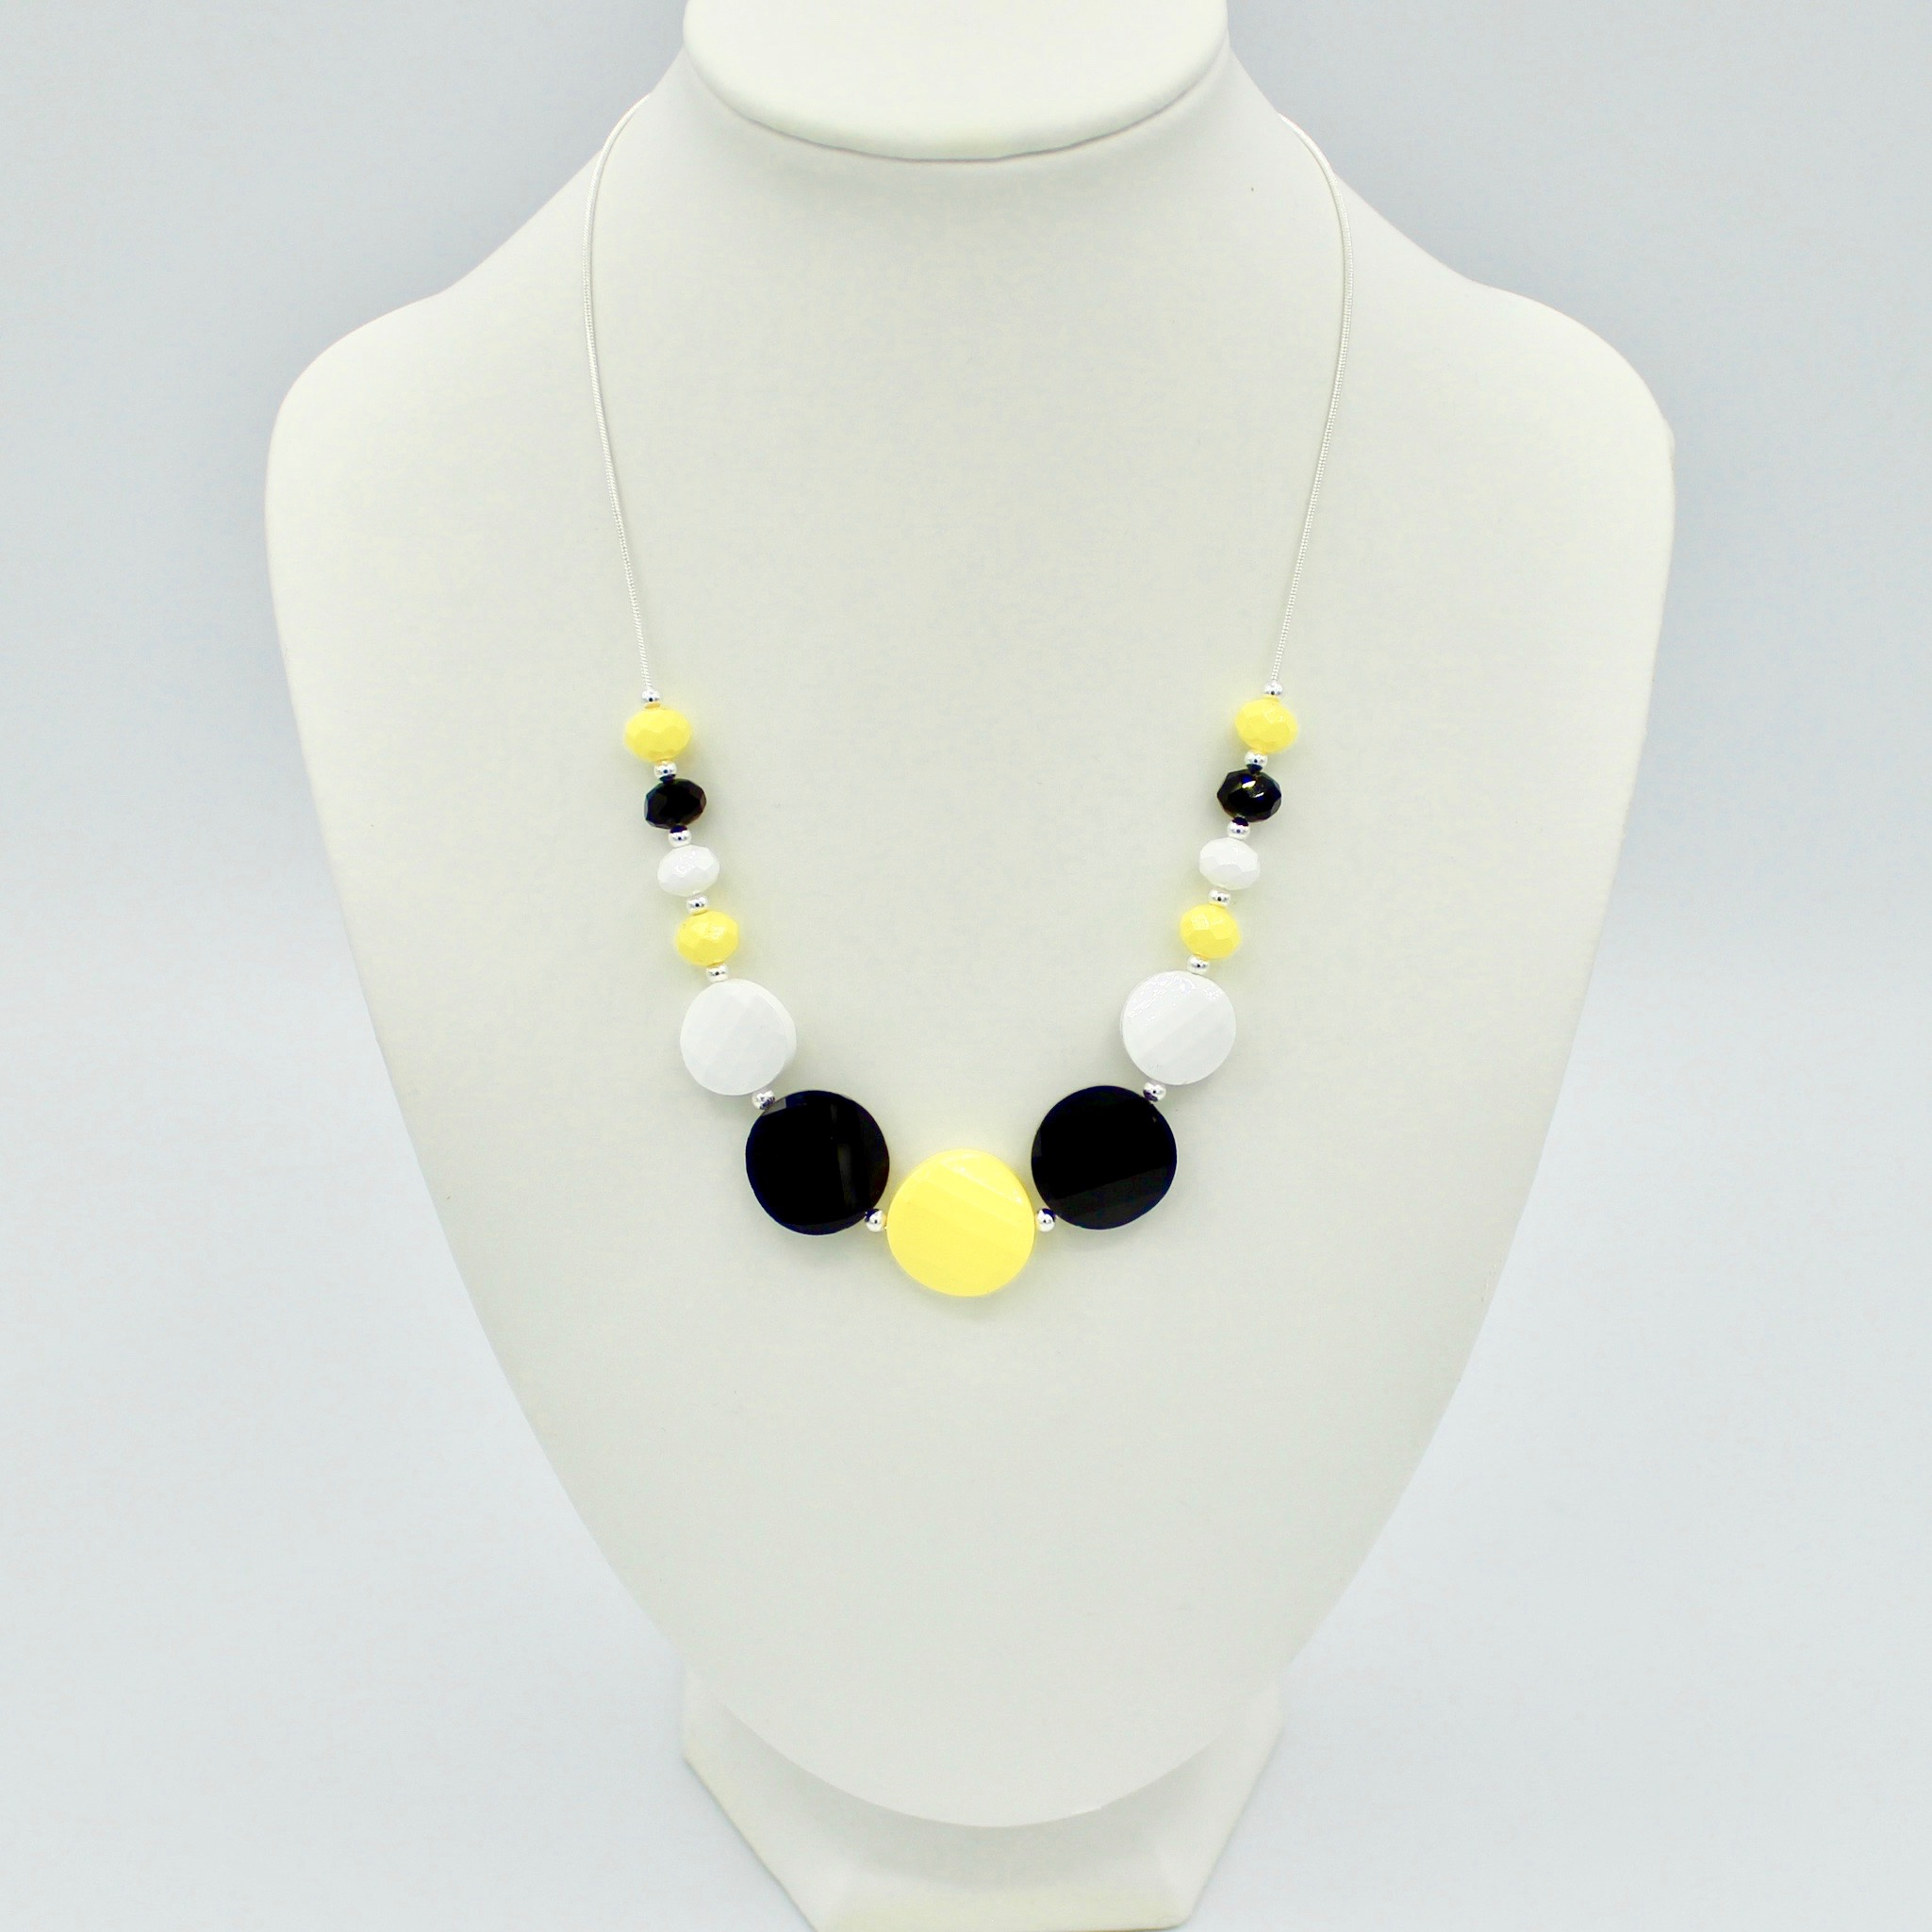 3 Colour circle and ball necklace